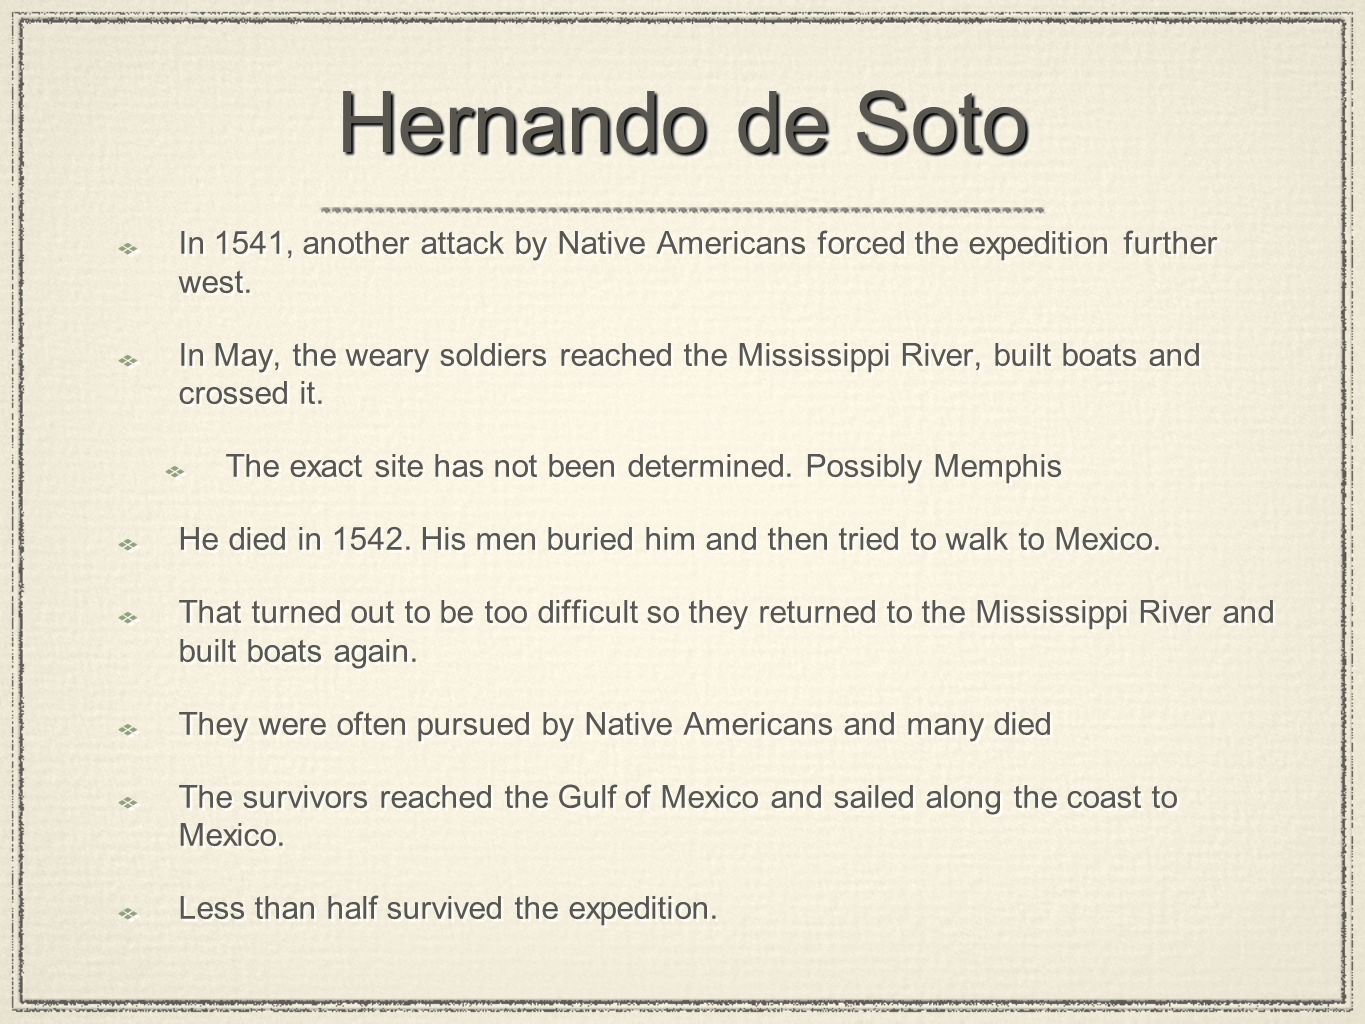 Hernando de Soto In 1541, another attack by Native Americans forced the expedition further west.